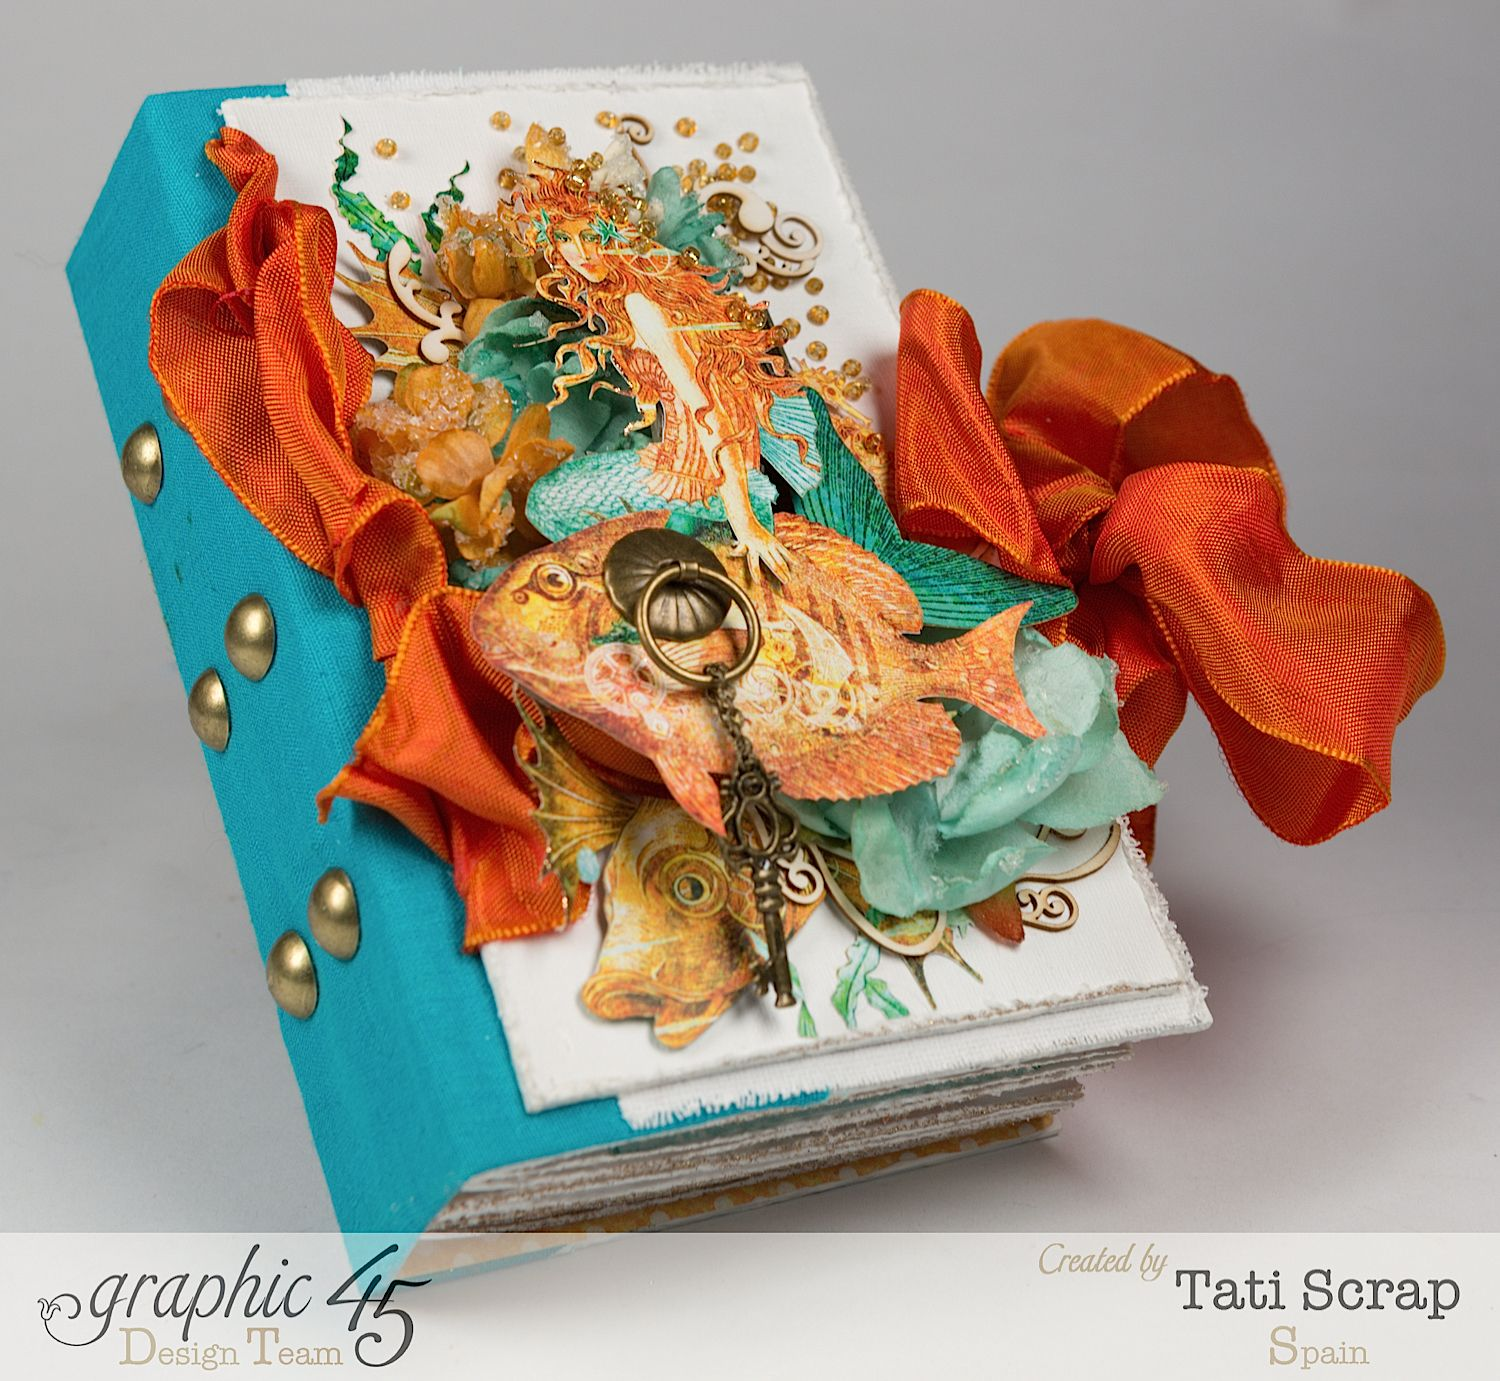 Tati,Traveller Book, Voyage Beneath the Sea, Product by Graphic 45, Photo 3-a